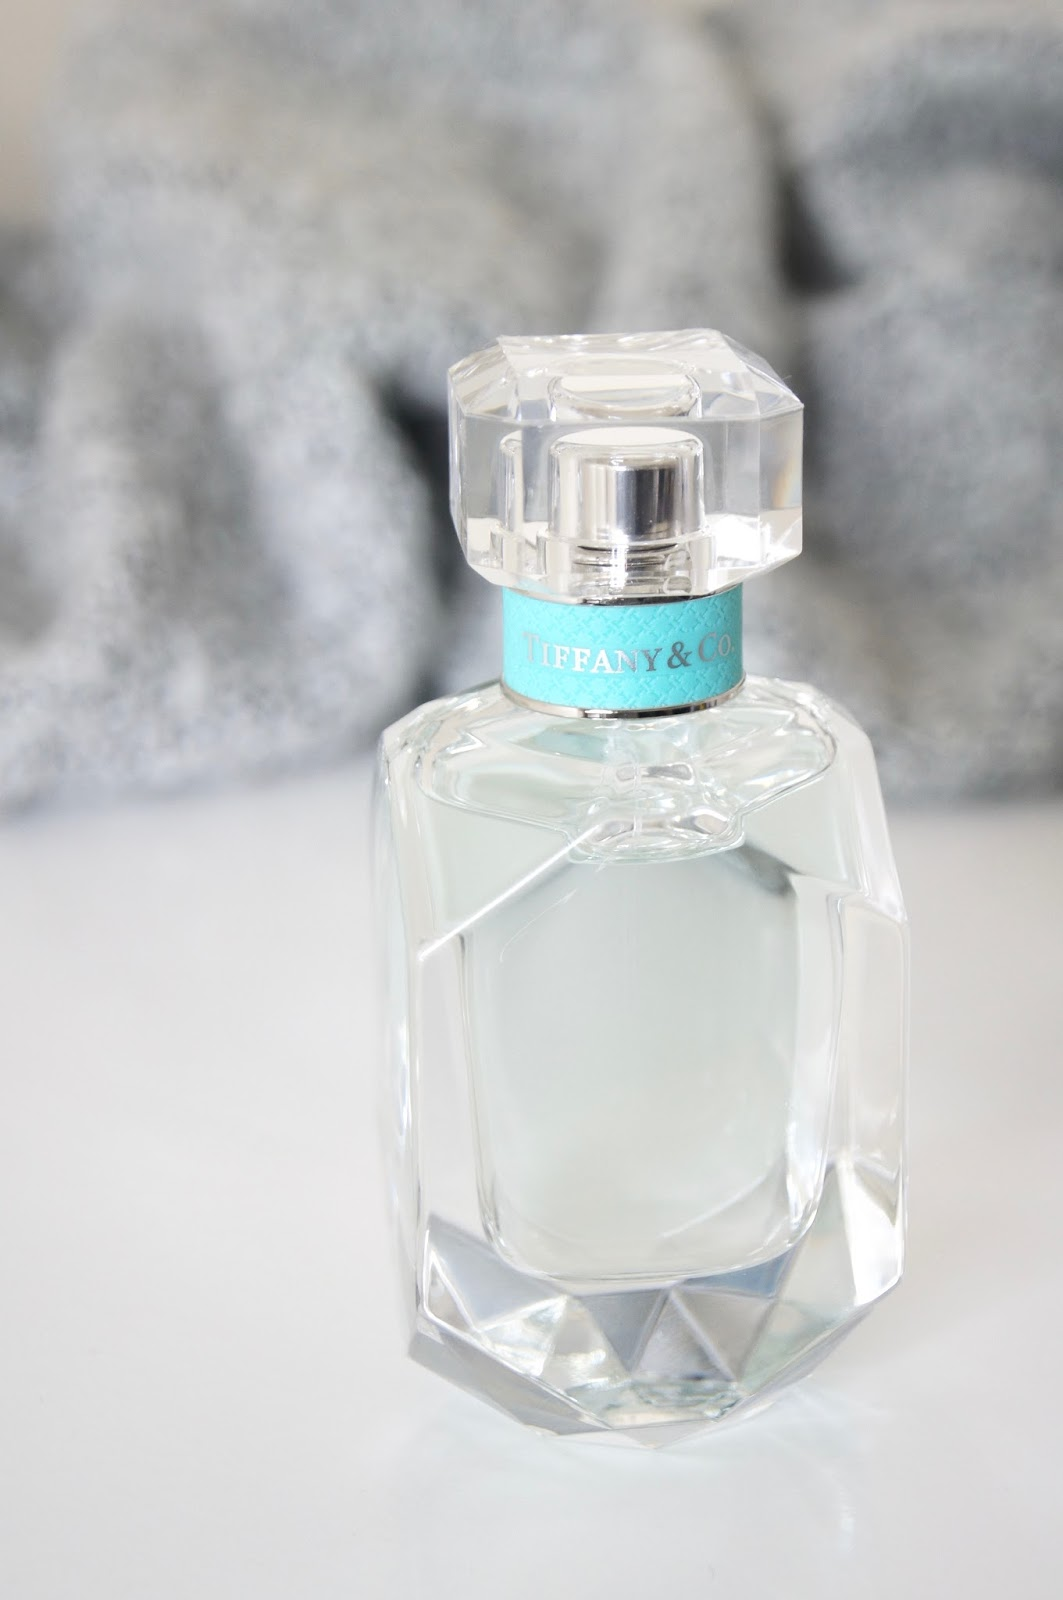 Tiffany Co Eau De Parfum Review Alicegracebeauty Uk Beauty Blog